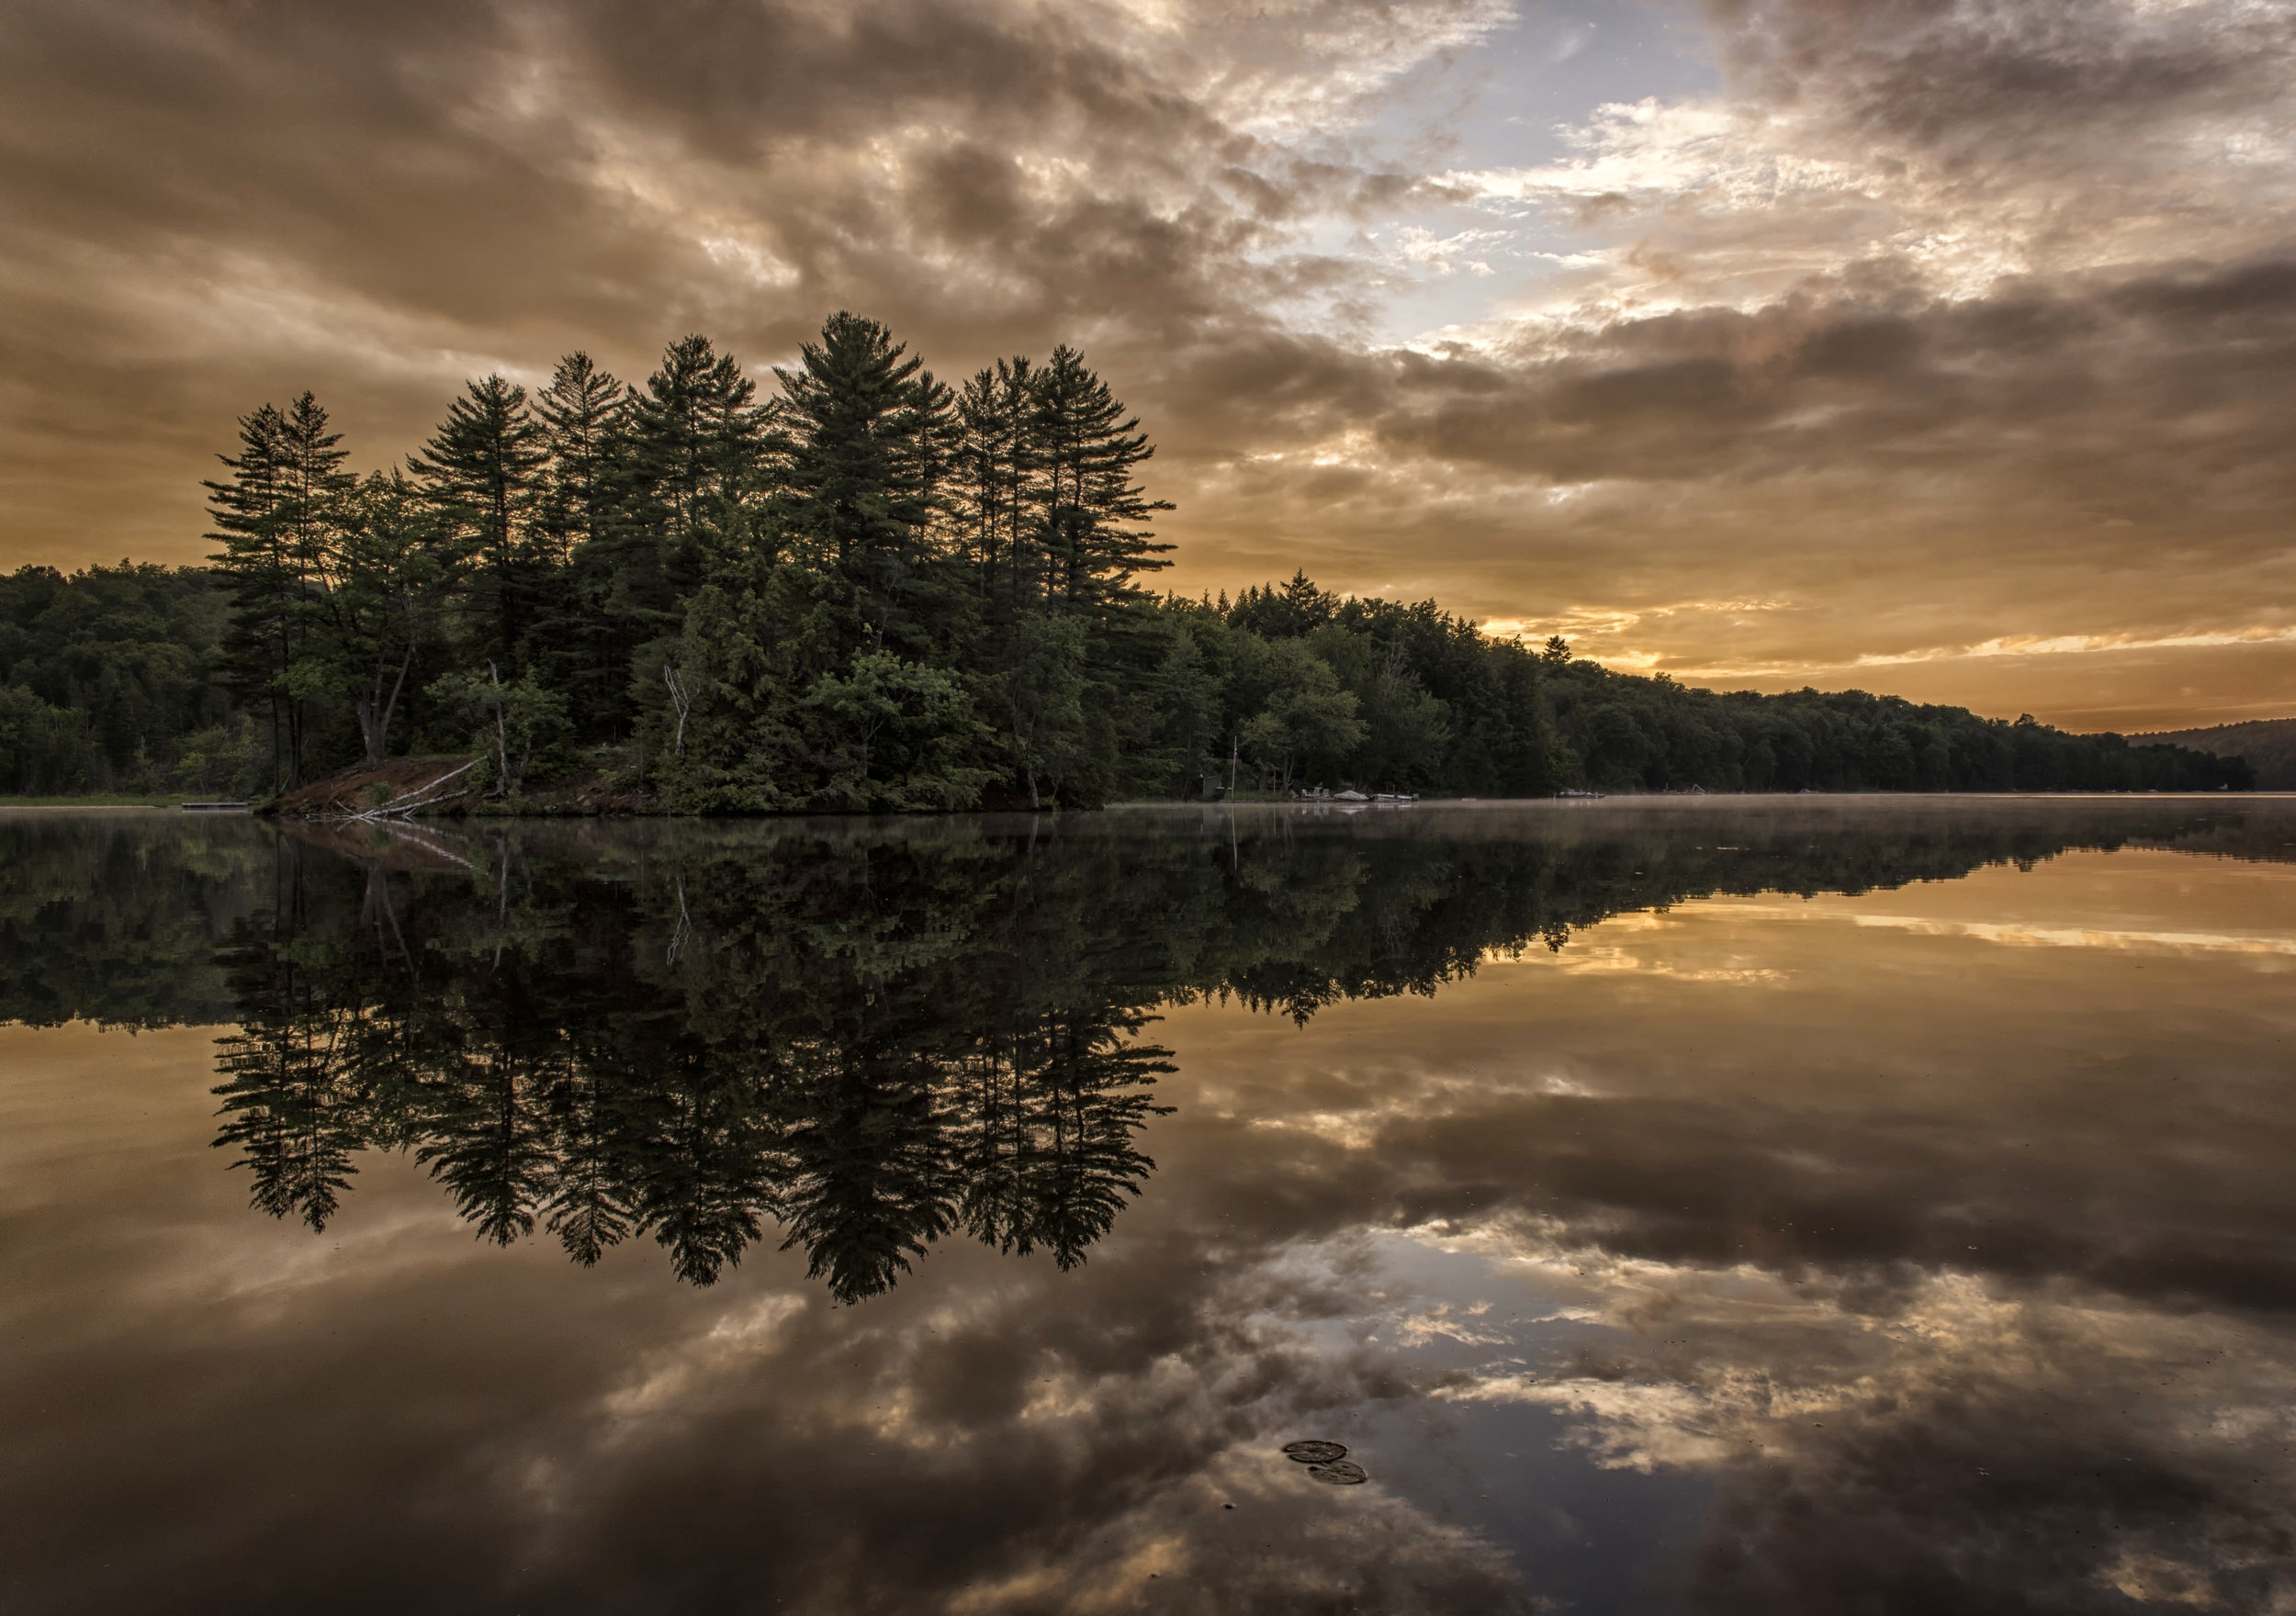 Northern Ontario photography workshops